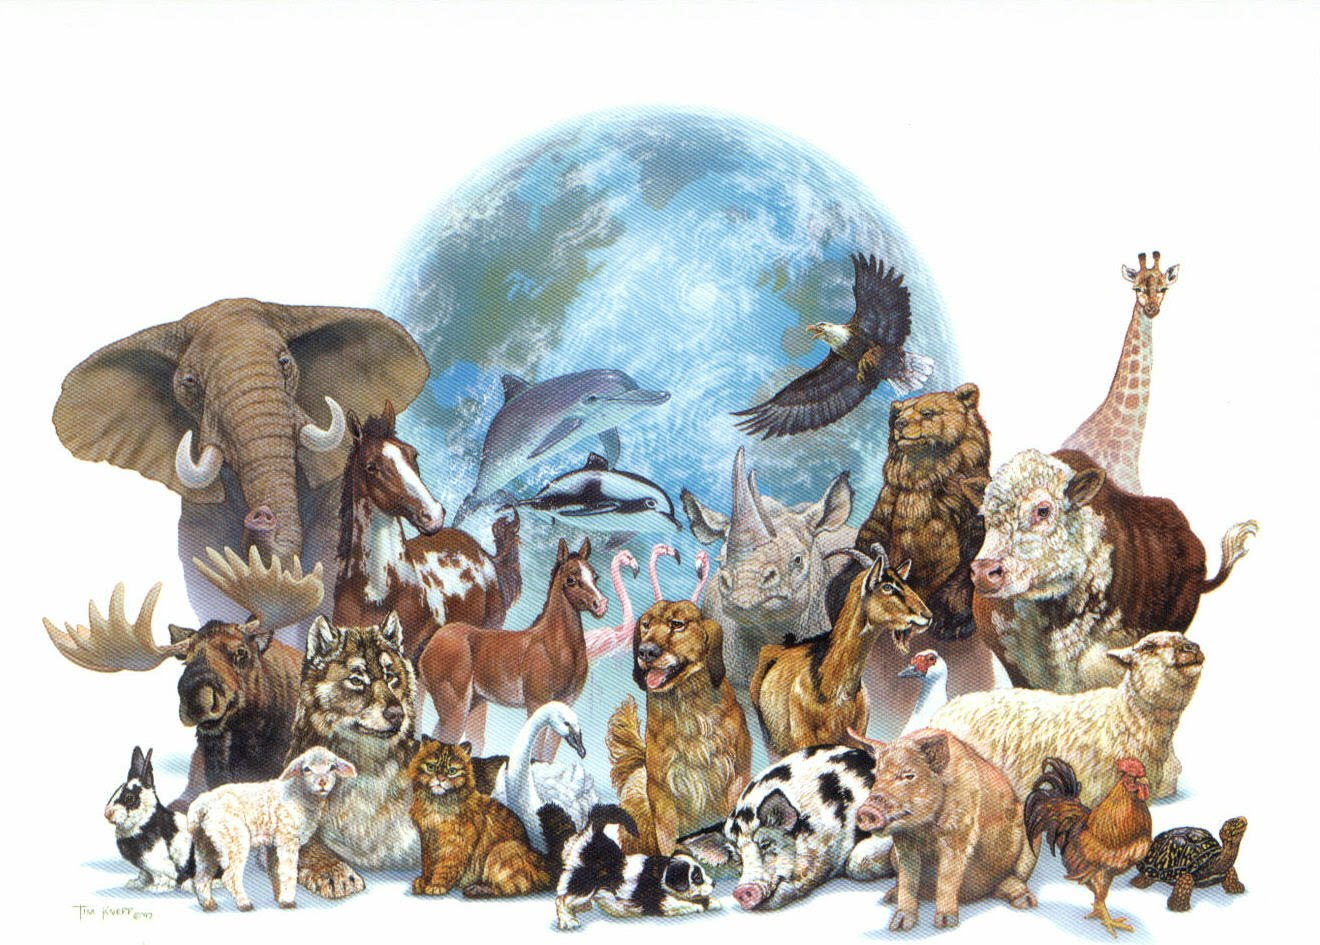 All Jungle Animals